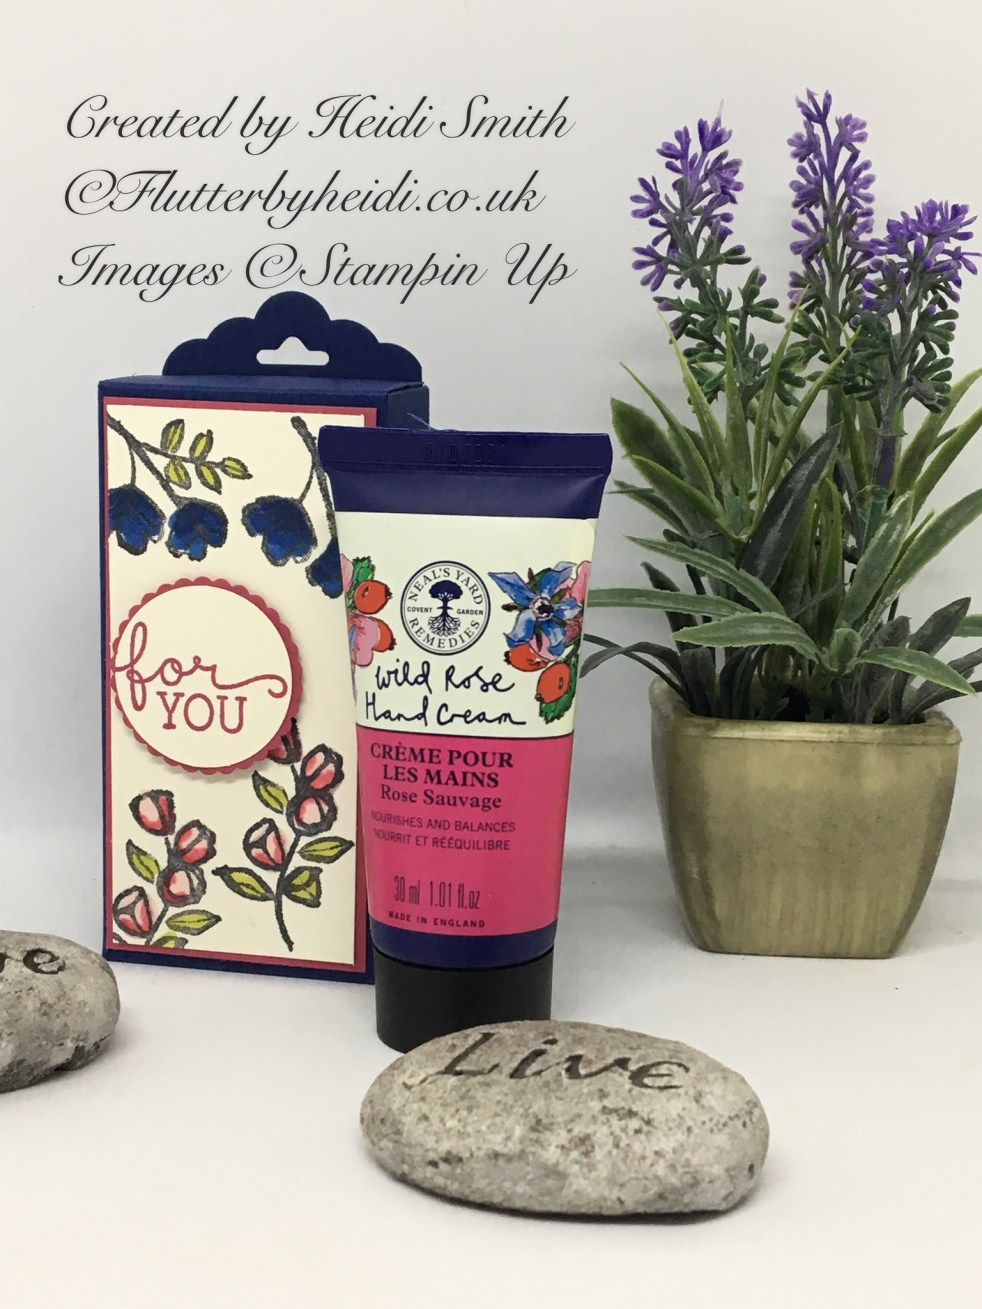 Neal's Yard Wild Rose Handcream box by flutterbyheidi